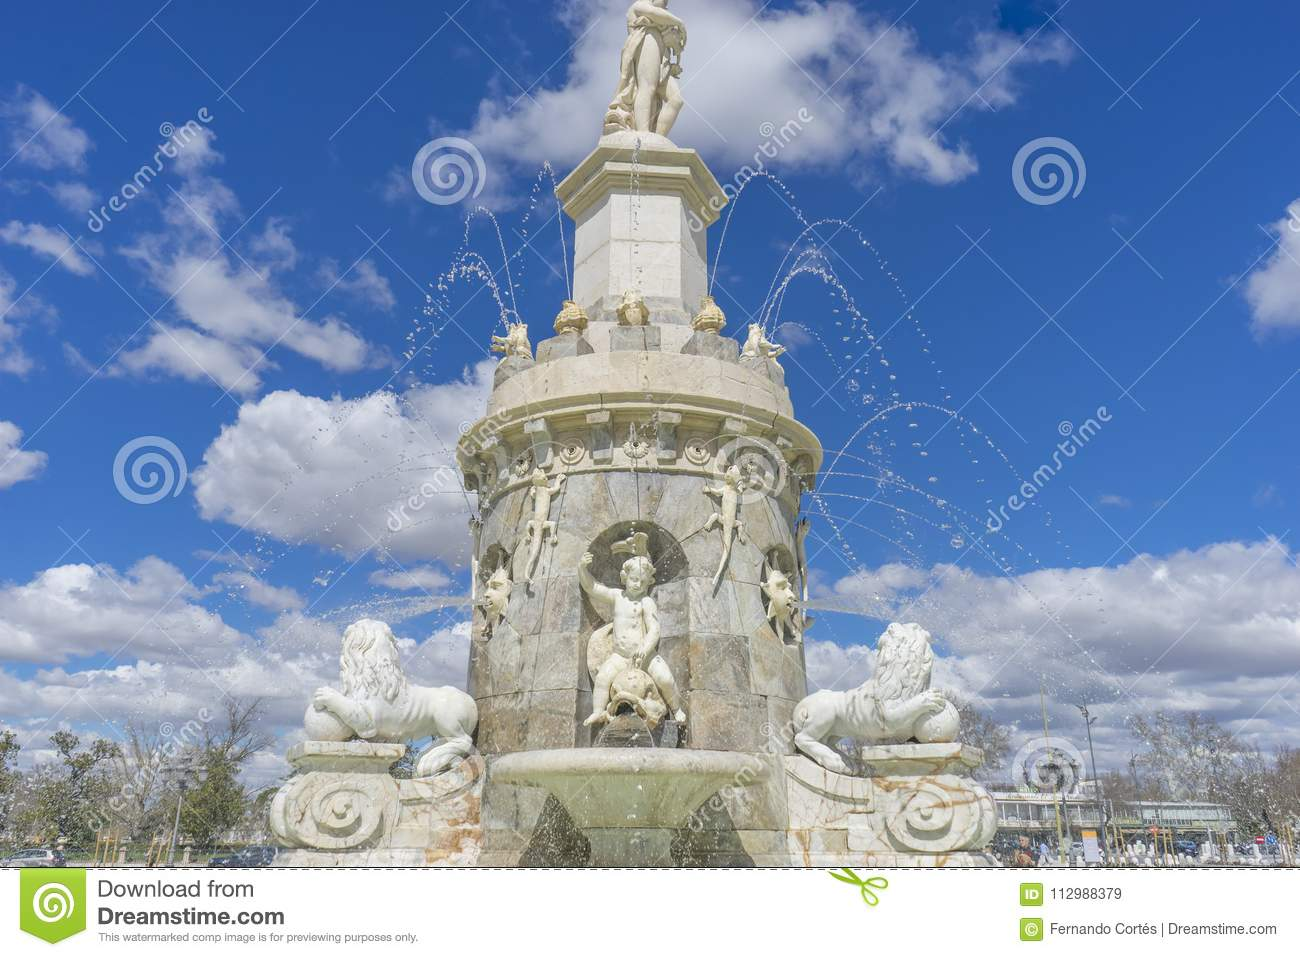 Tourism, Fountain of the Mariblanca in Aranjuez close to the pal